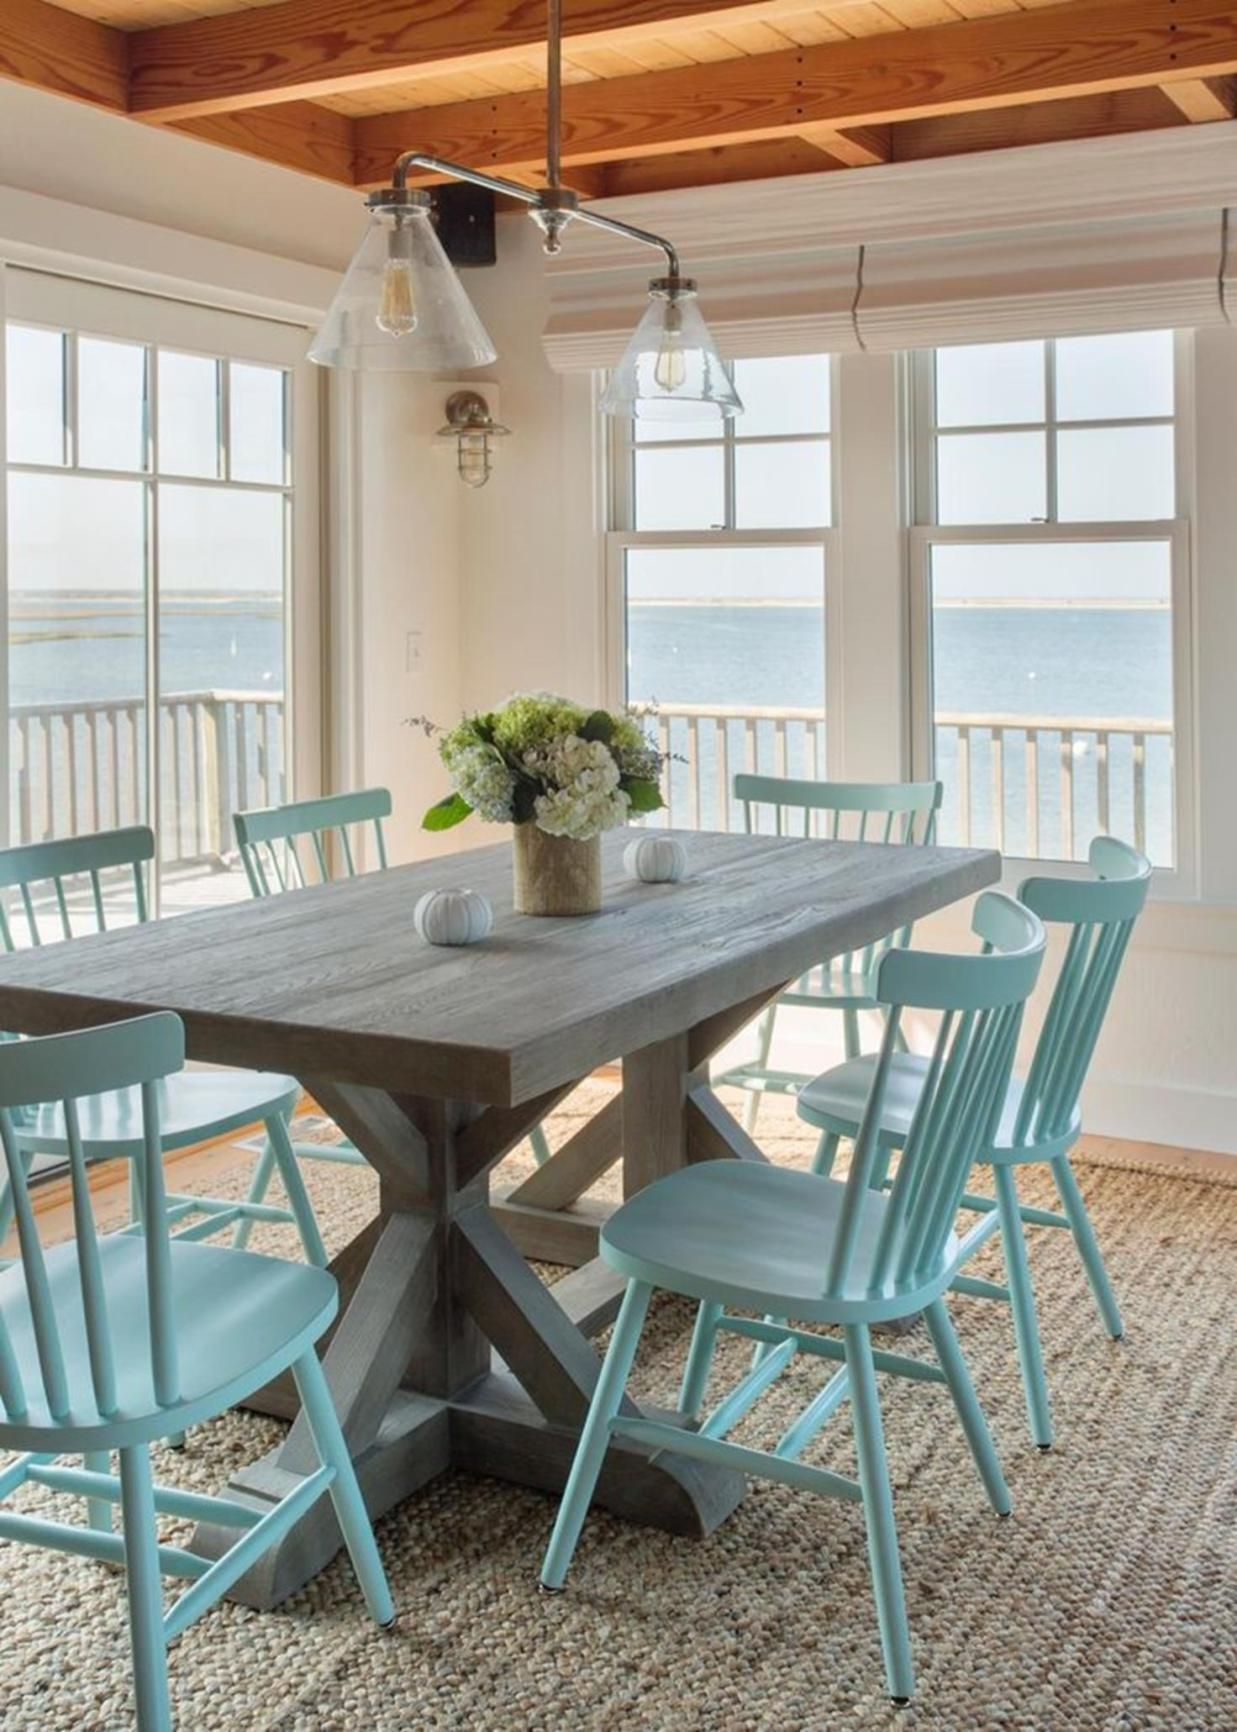 47 Excellence Coastal Kitchen Decorating Table Design #Kitchenartdecor